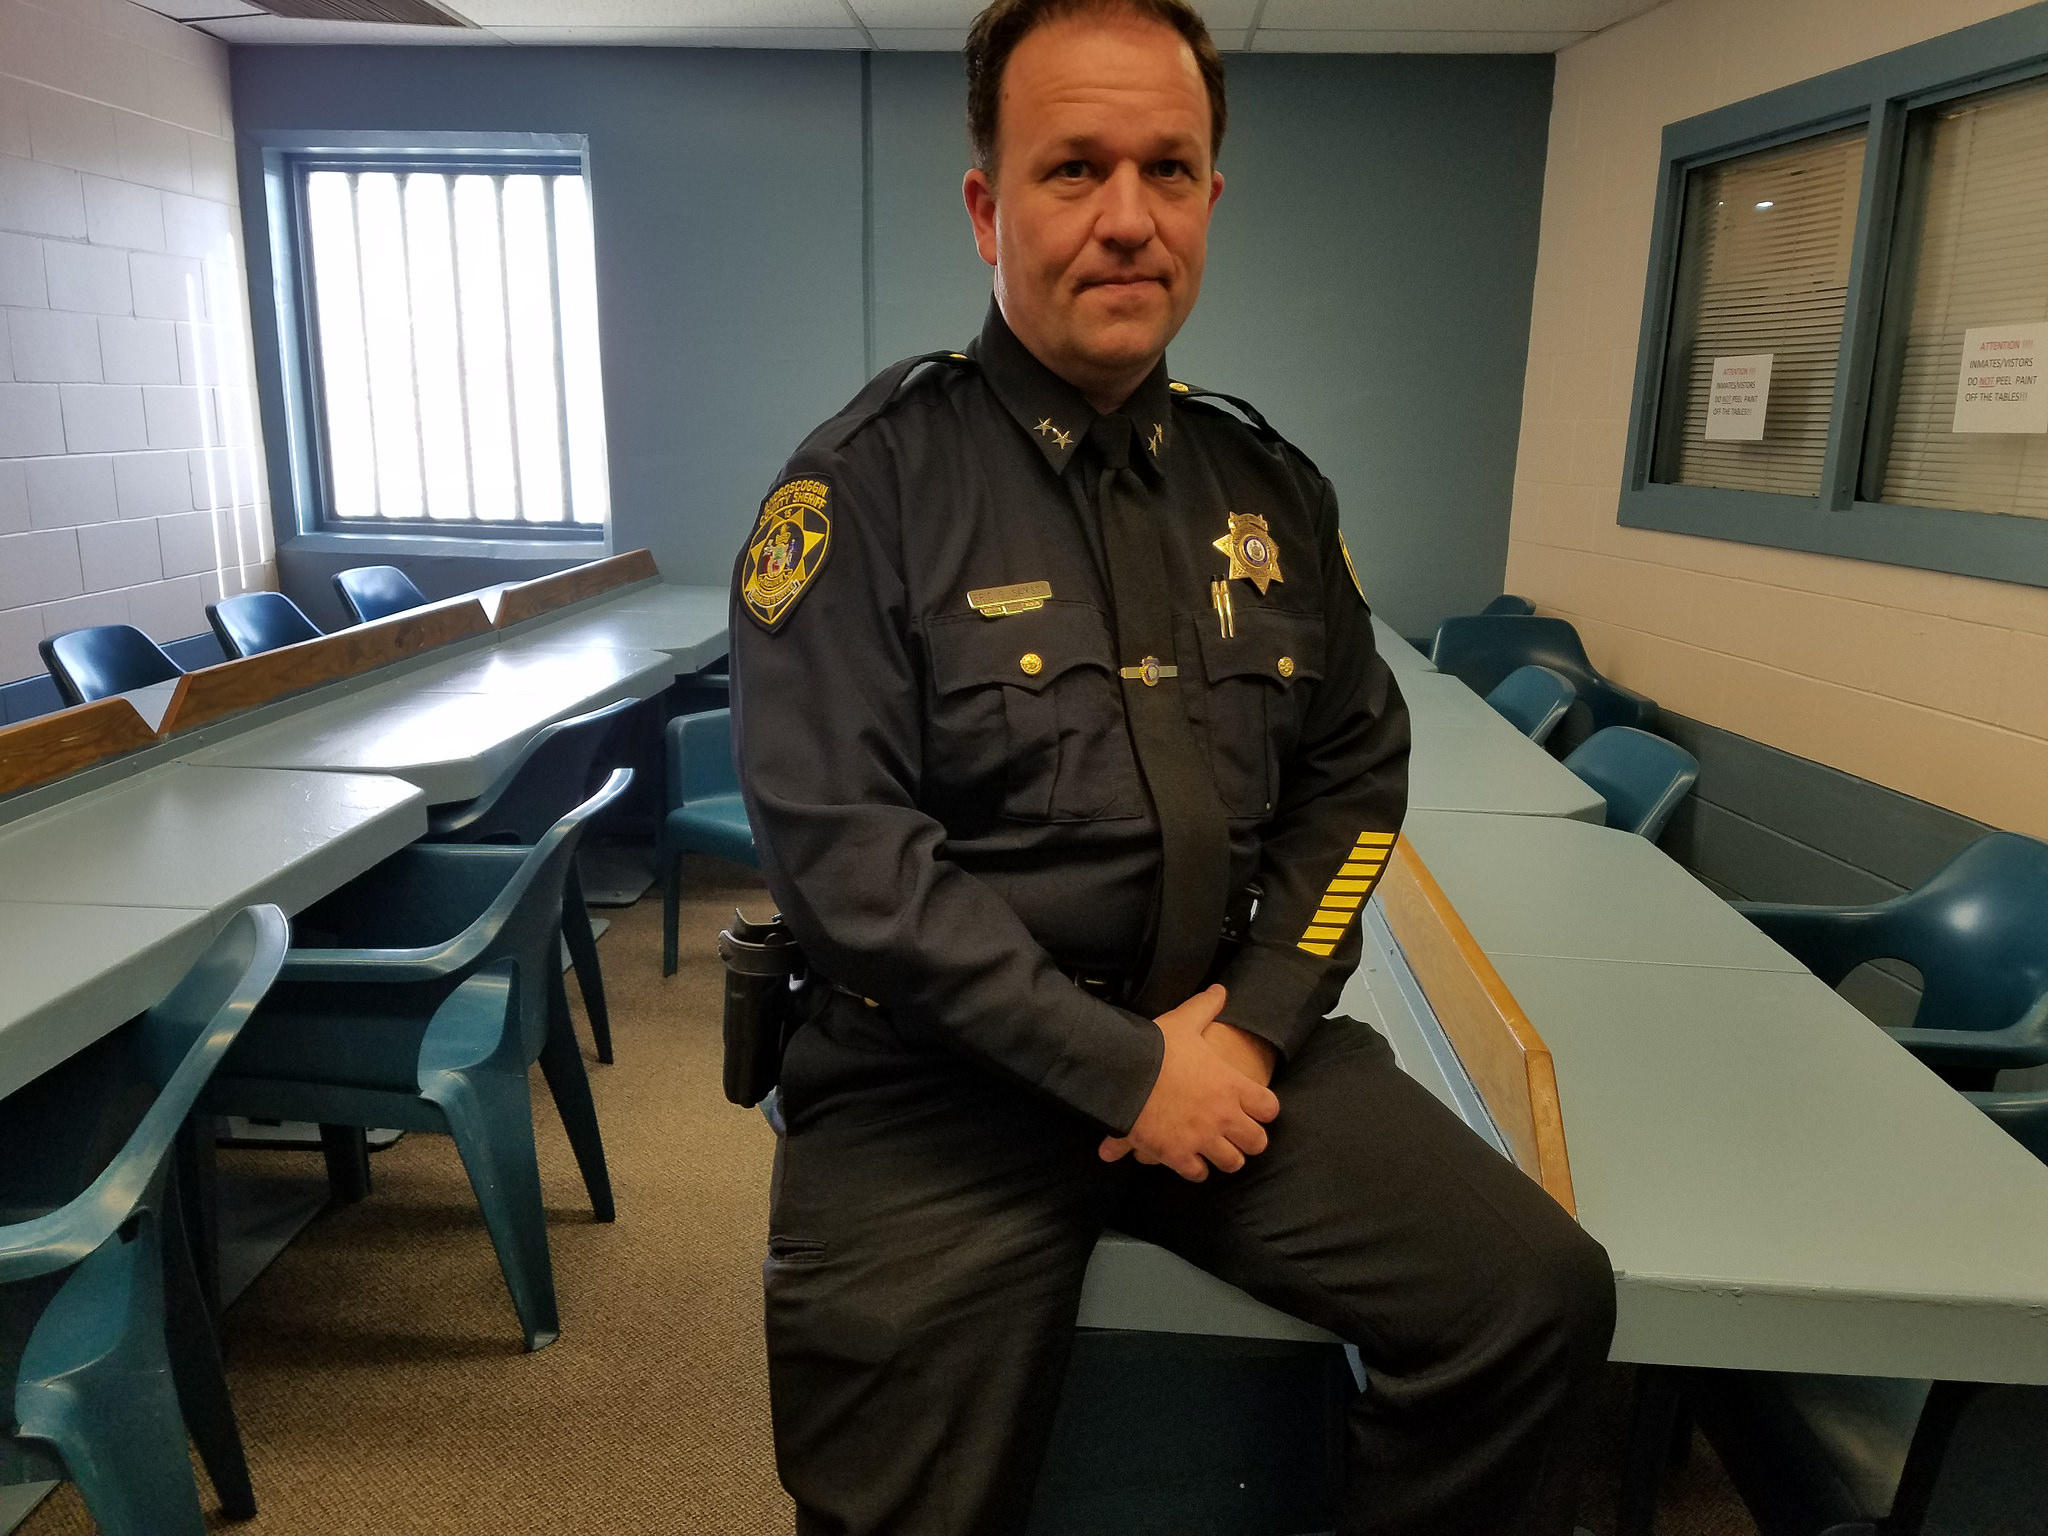 In Effort to Reduce Contraband, More Maine Jails Turn to